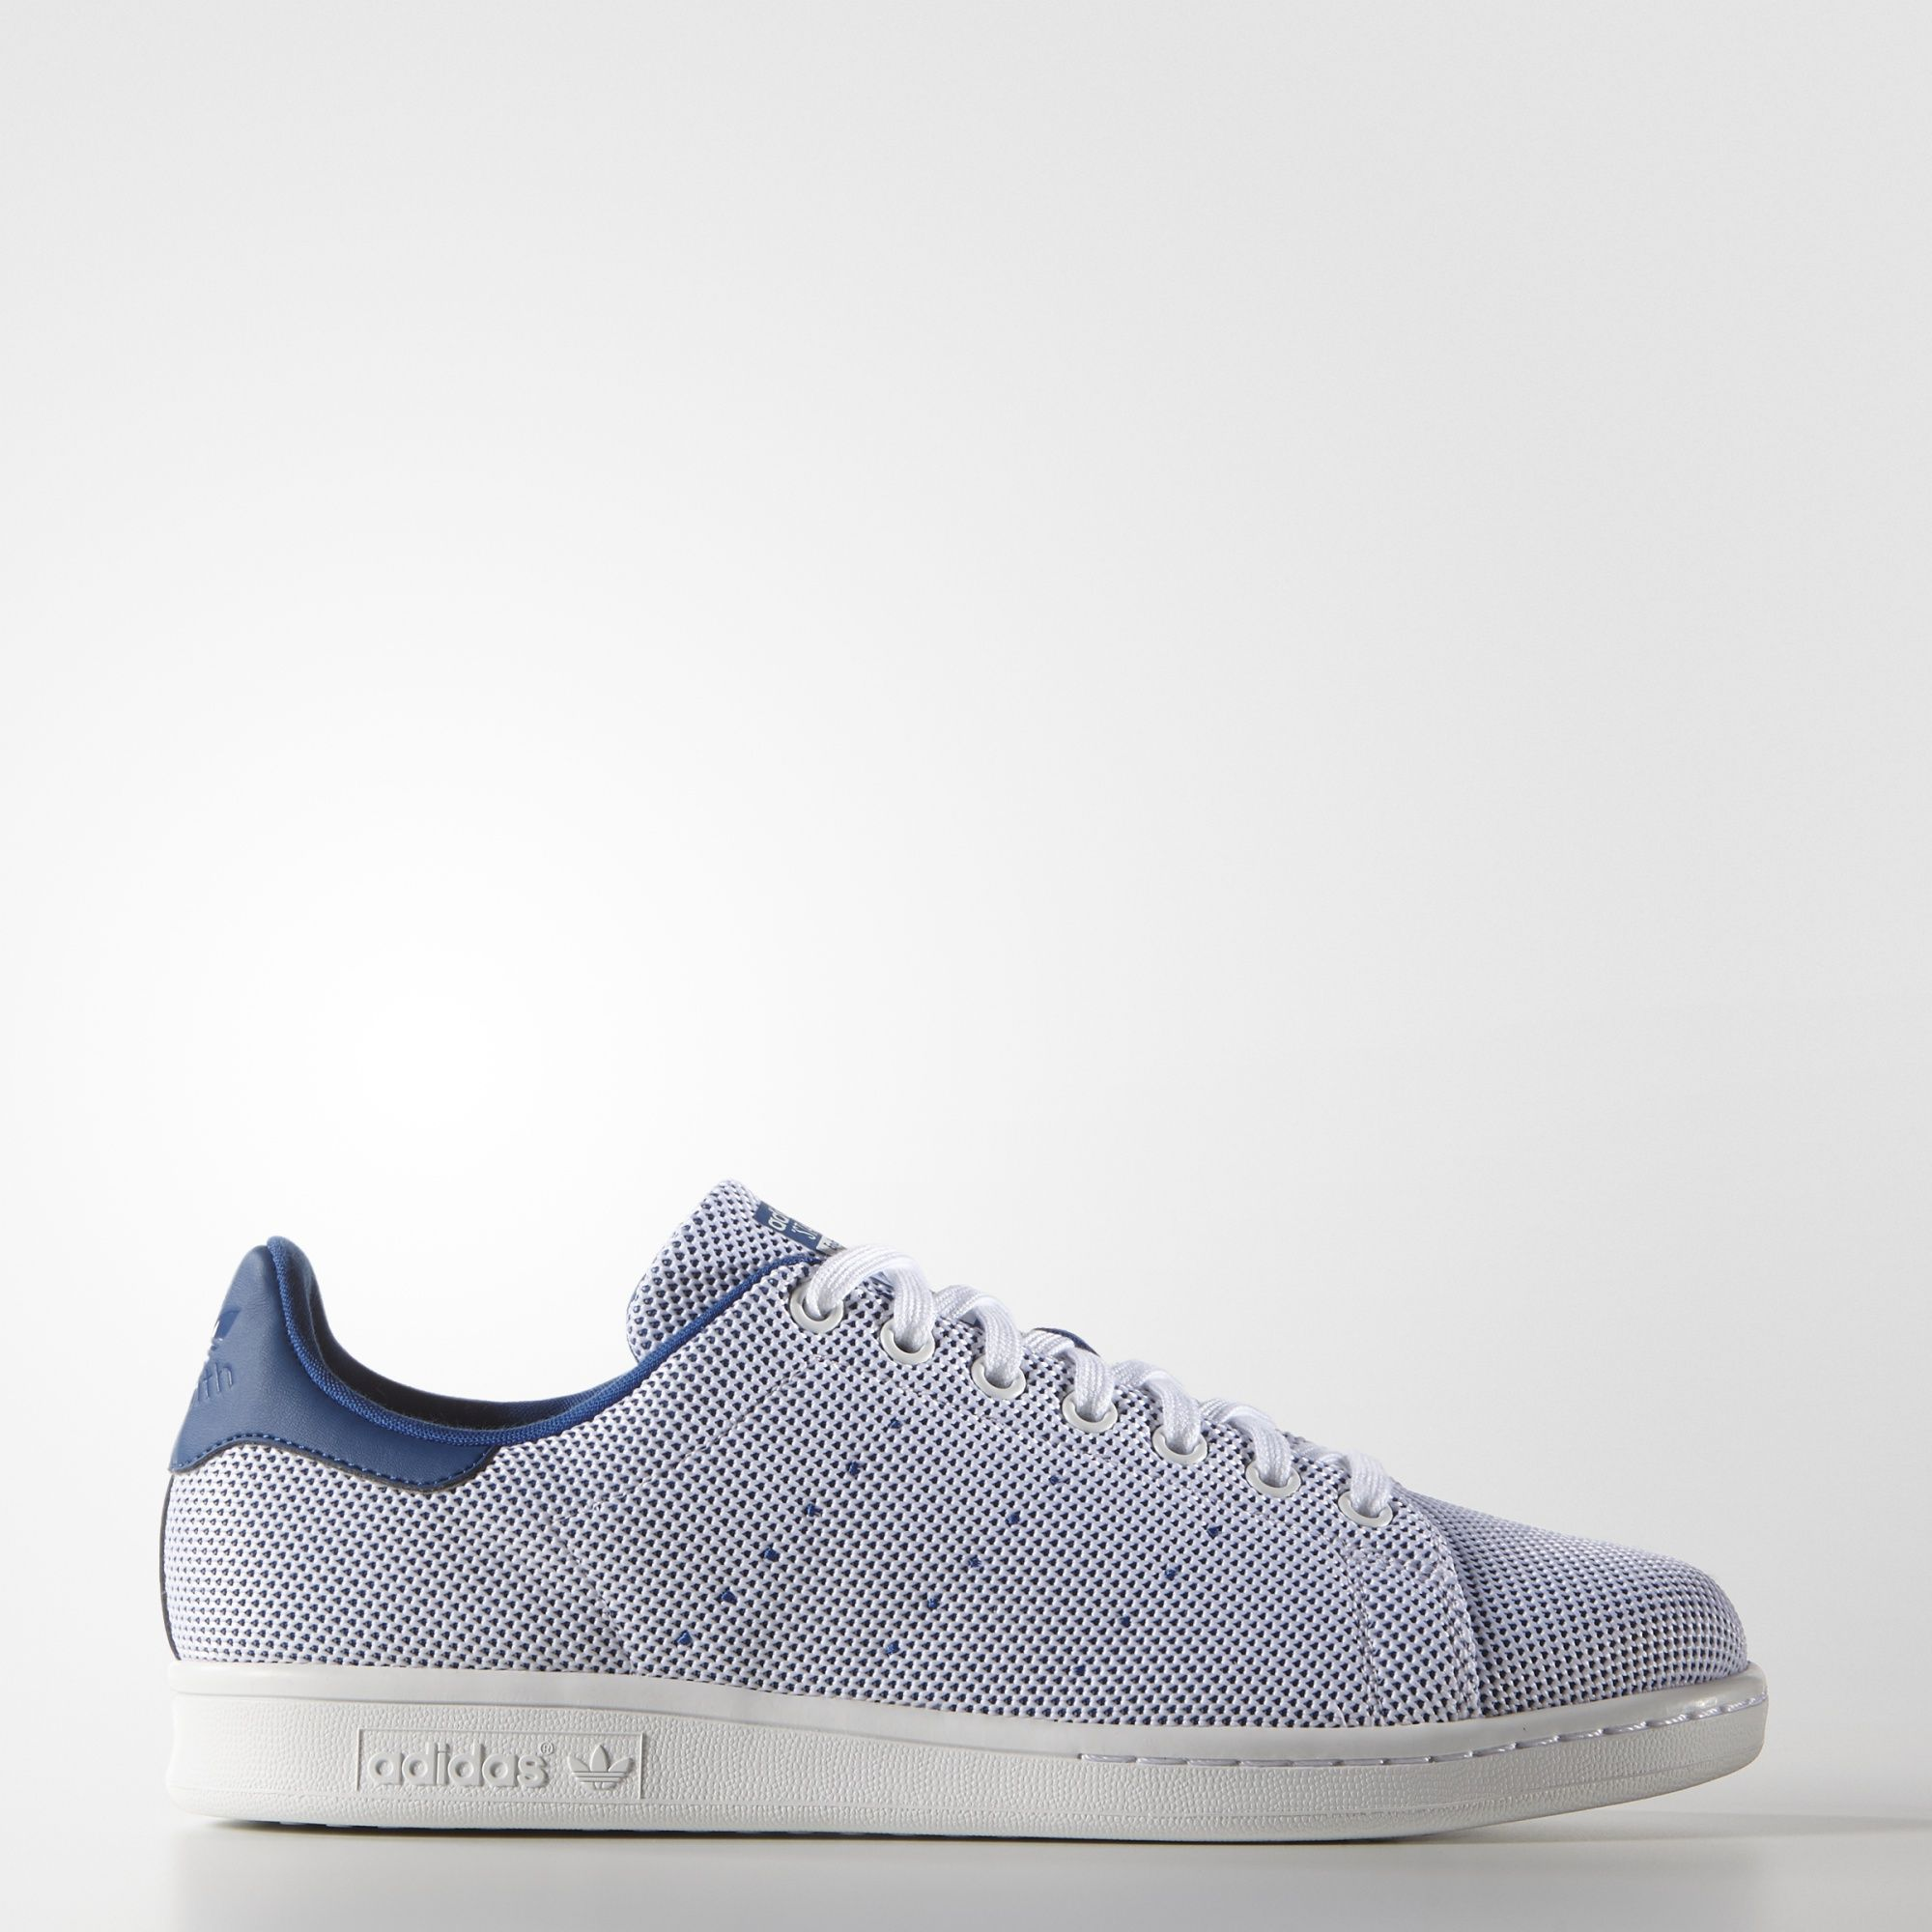 online retailer ba385 e9299 Pin by Zak Putnam on Clothing | Stan smith shoes, Adidas ...